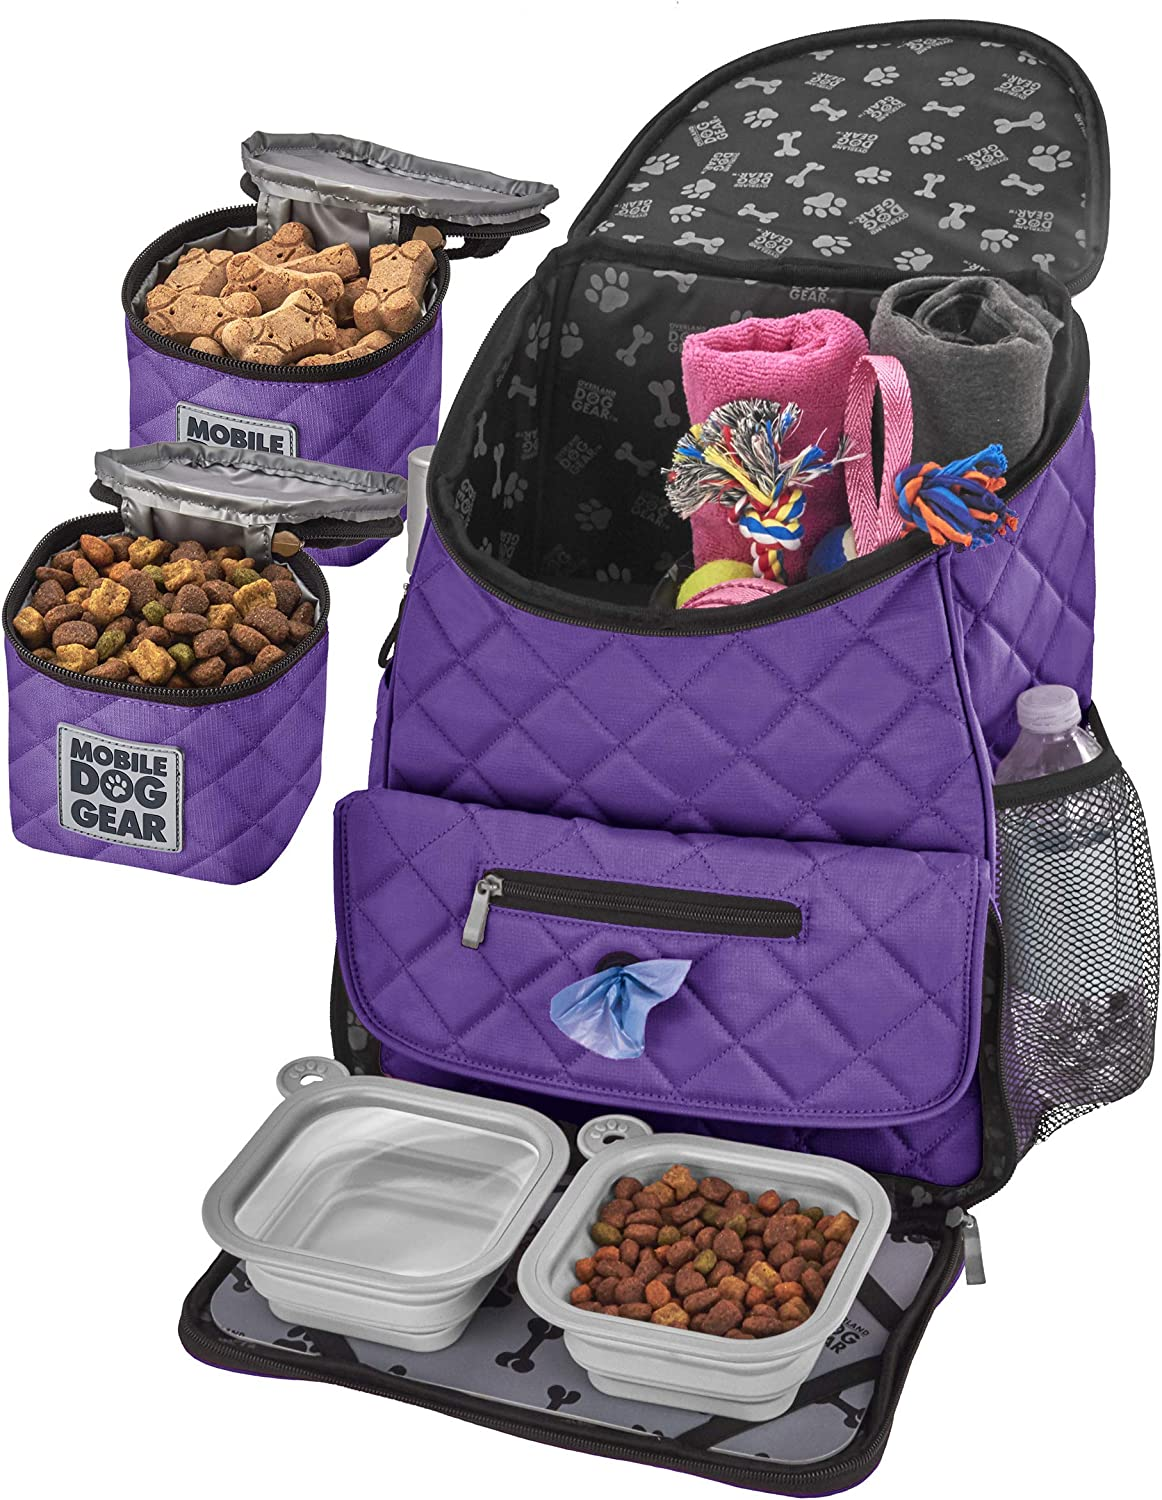 Mobile Dog Gear, Dog Travel Bag, Deluxe Quilted Weekender Backpack, Includes Lined Food Carriers and 2 Collapsible Dog Bowl, Purple